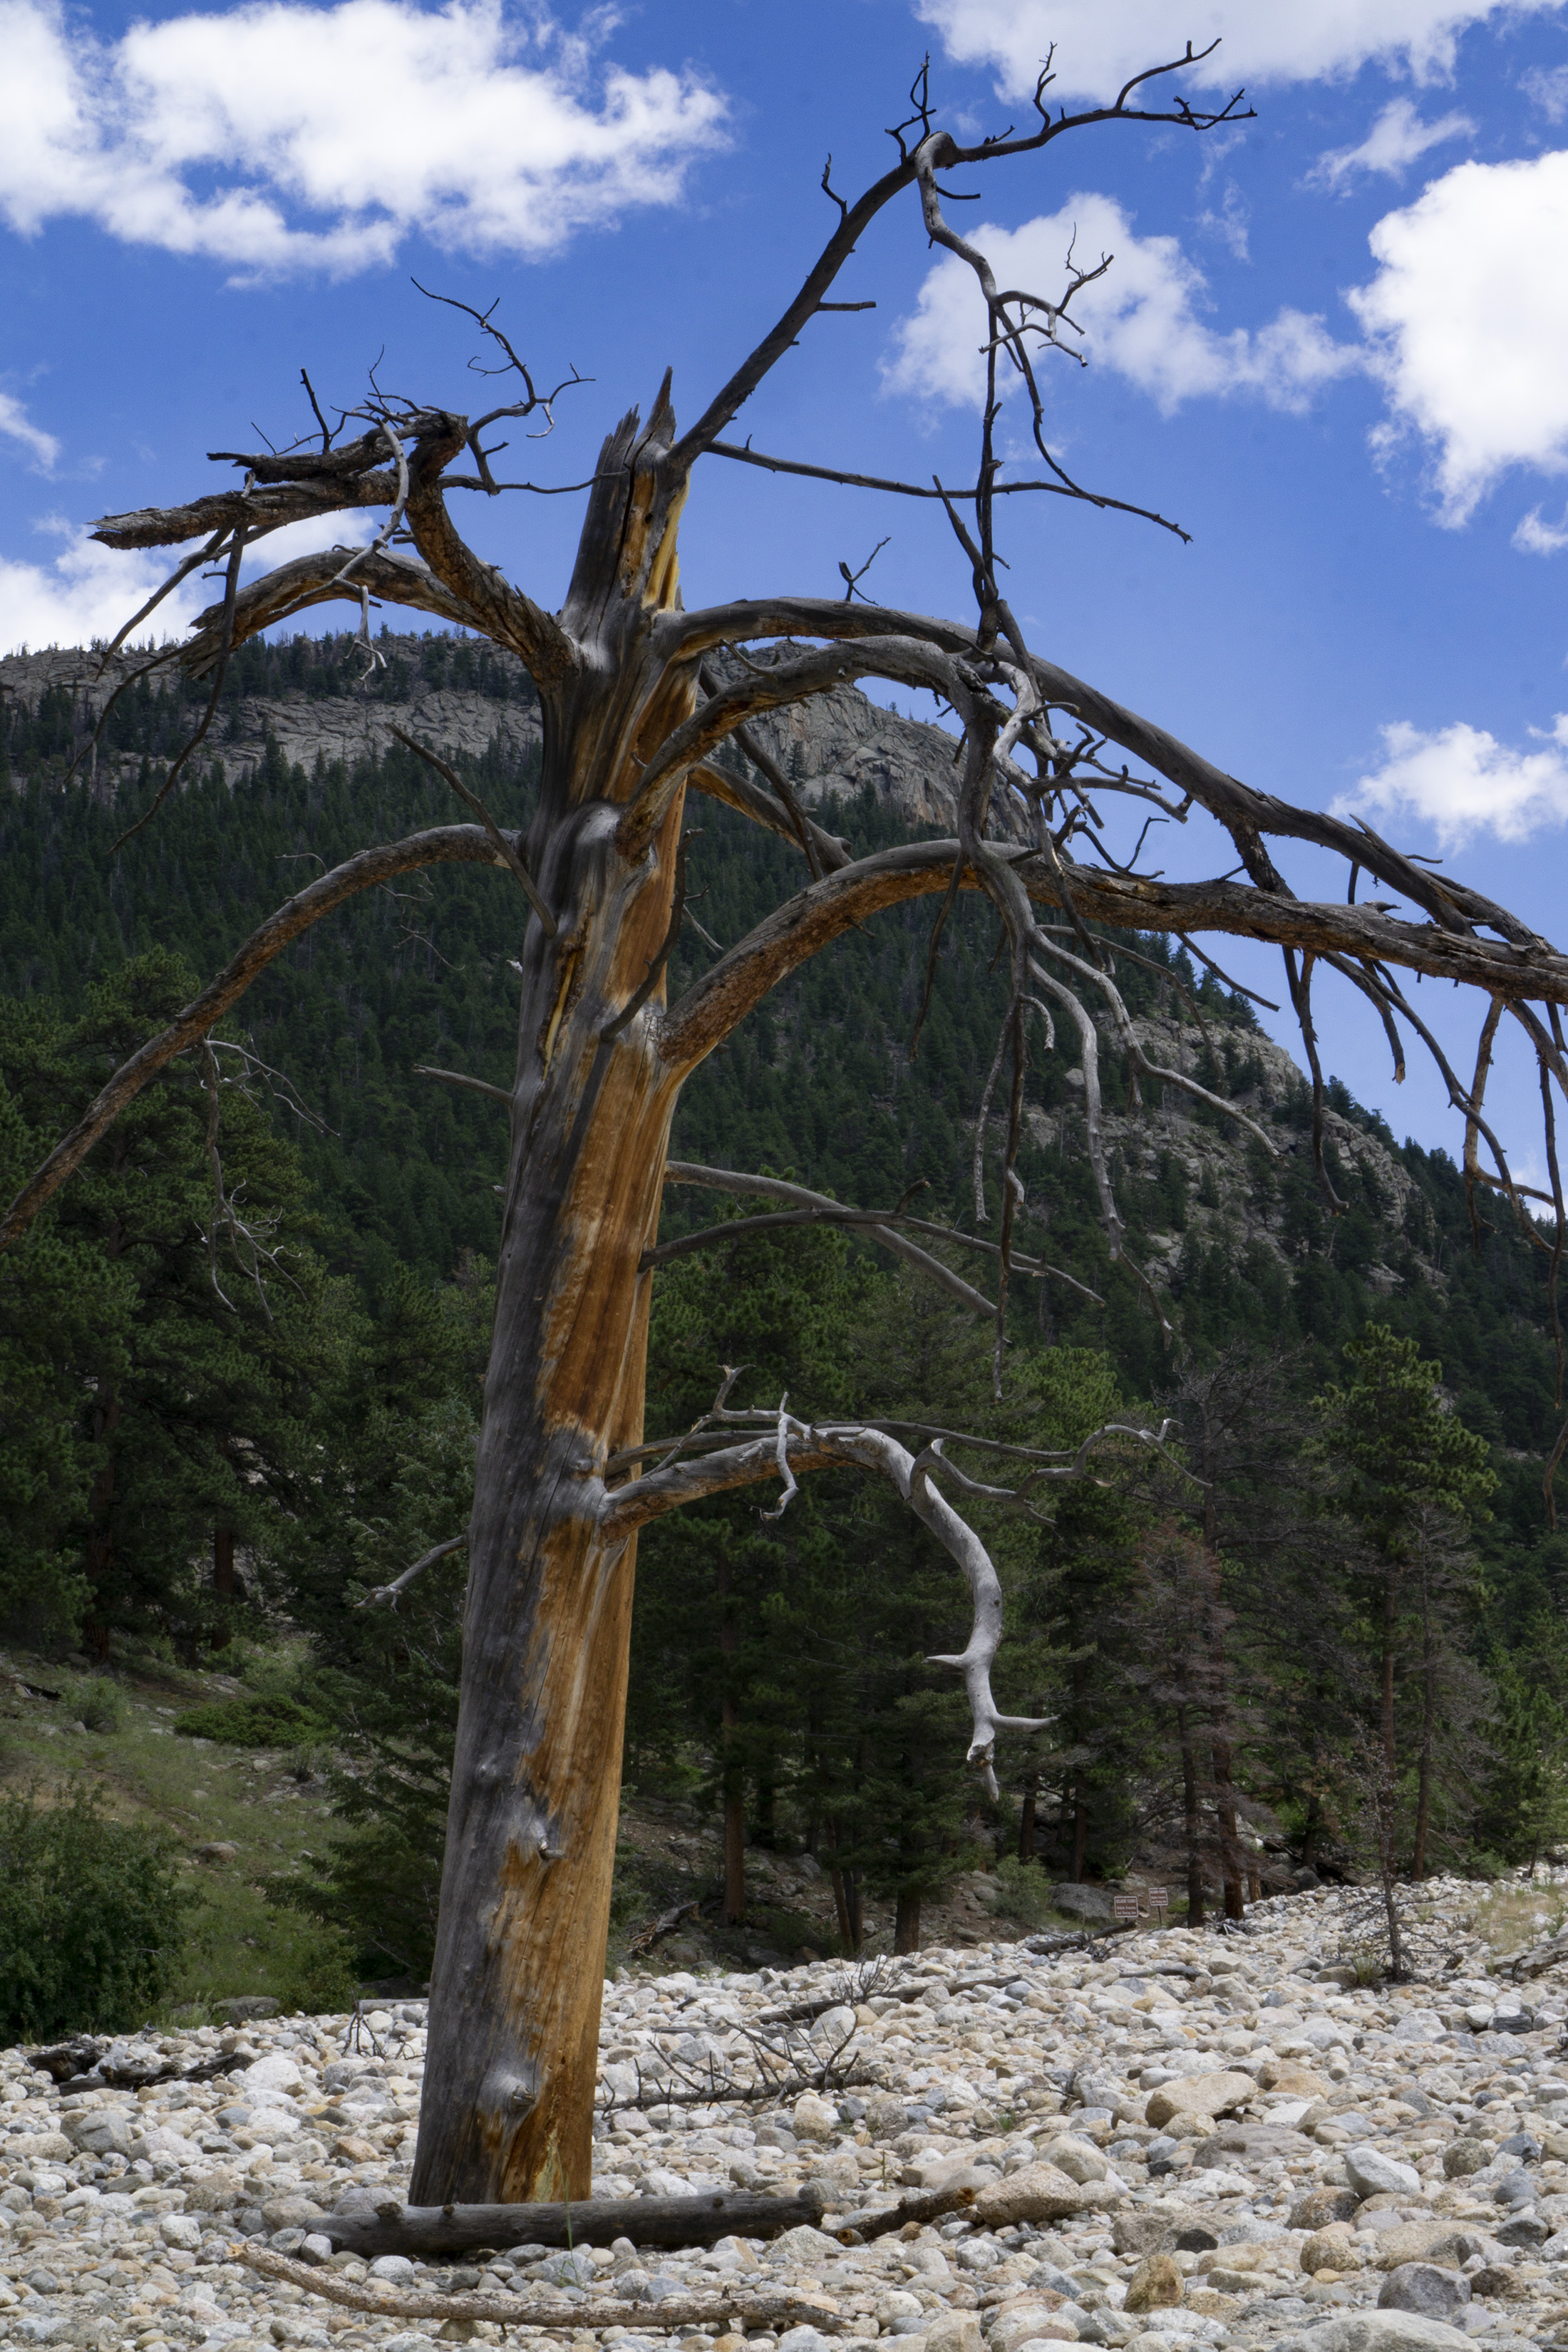 Dead tree near Alluvial Fan, Rocky Mountain National Park / Darker than Green